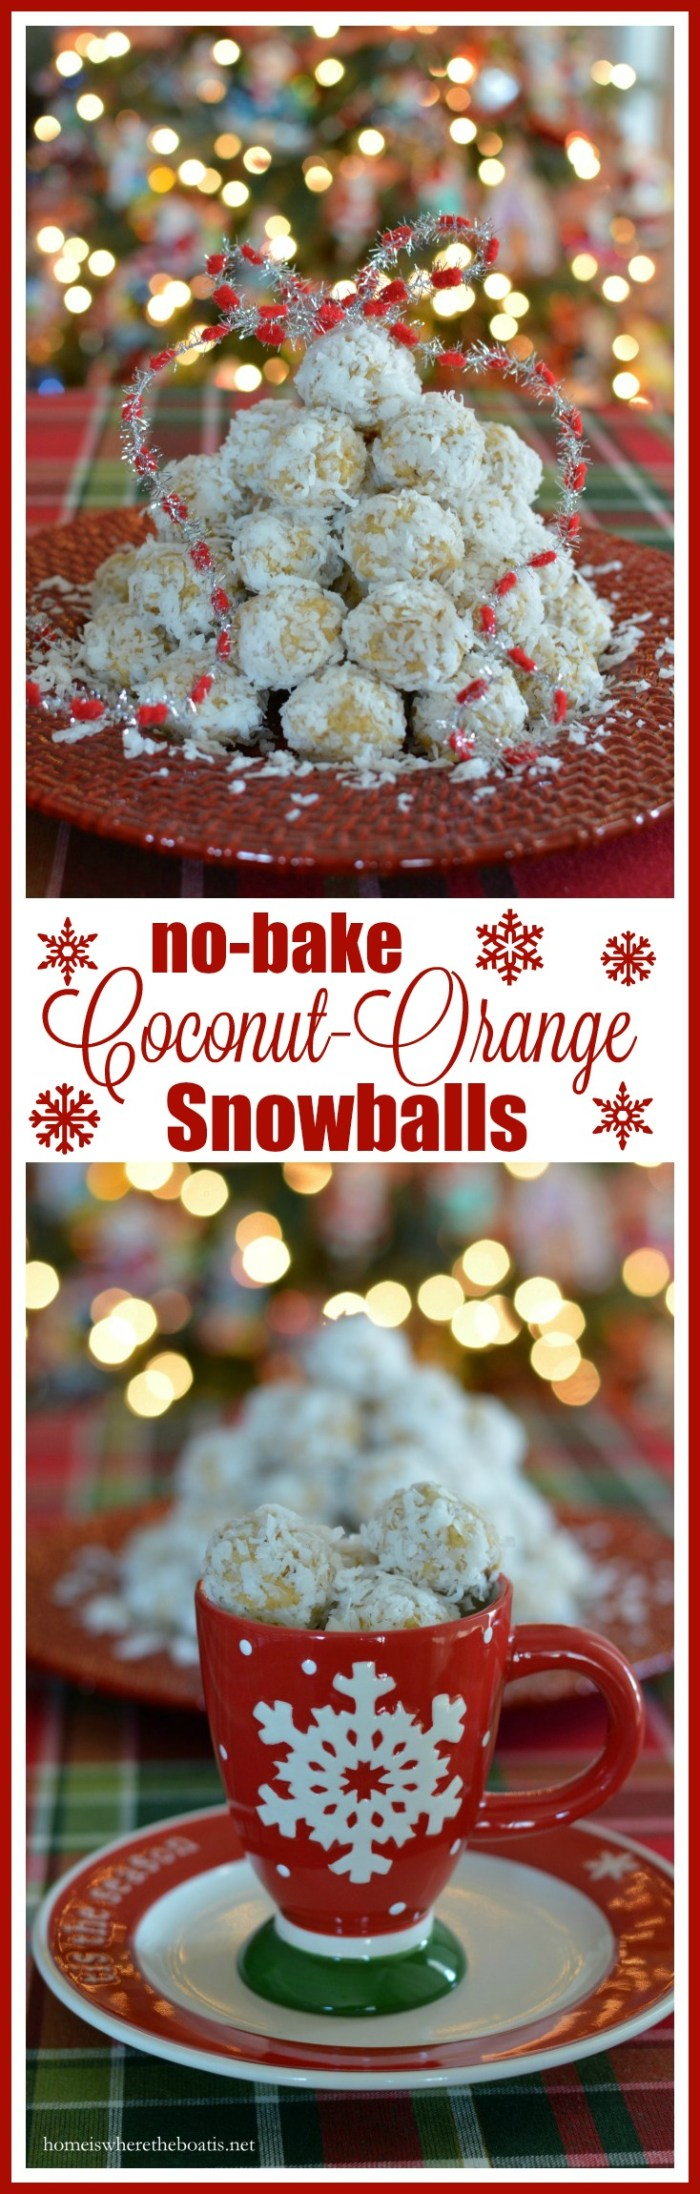 No-Bake Coconut-Orange Snowballs